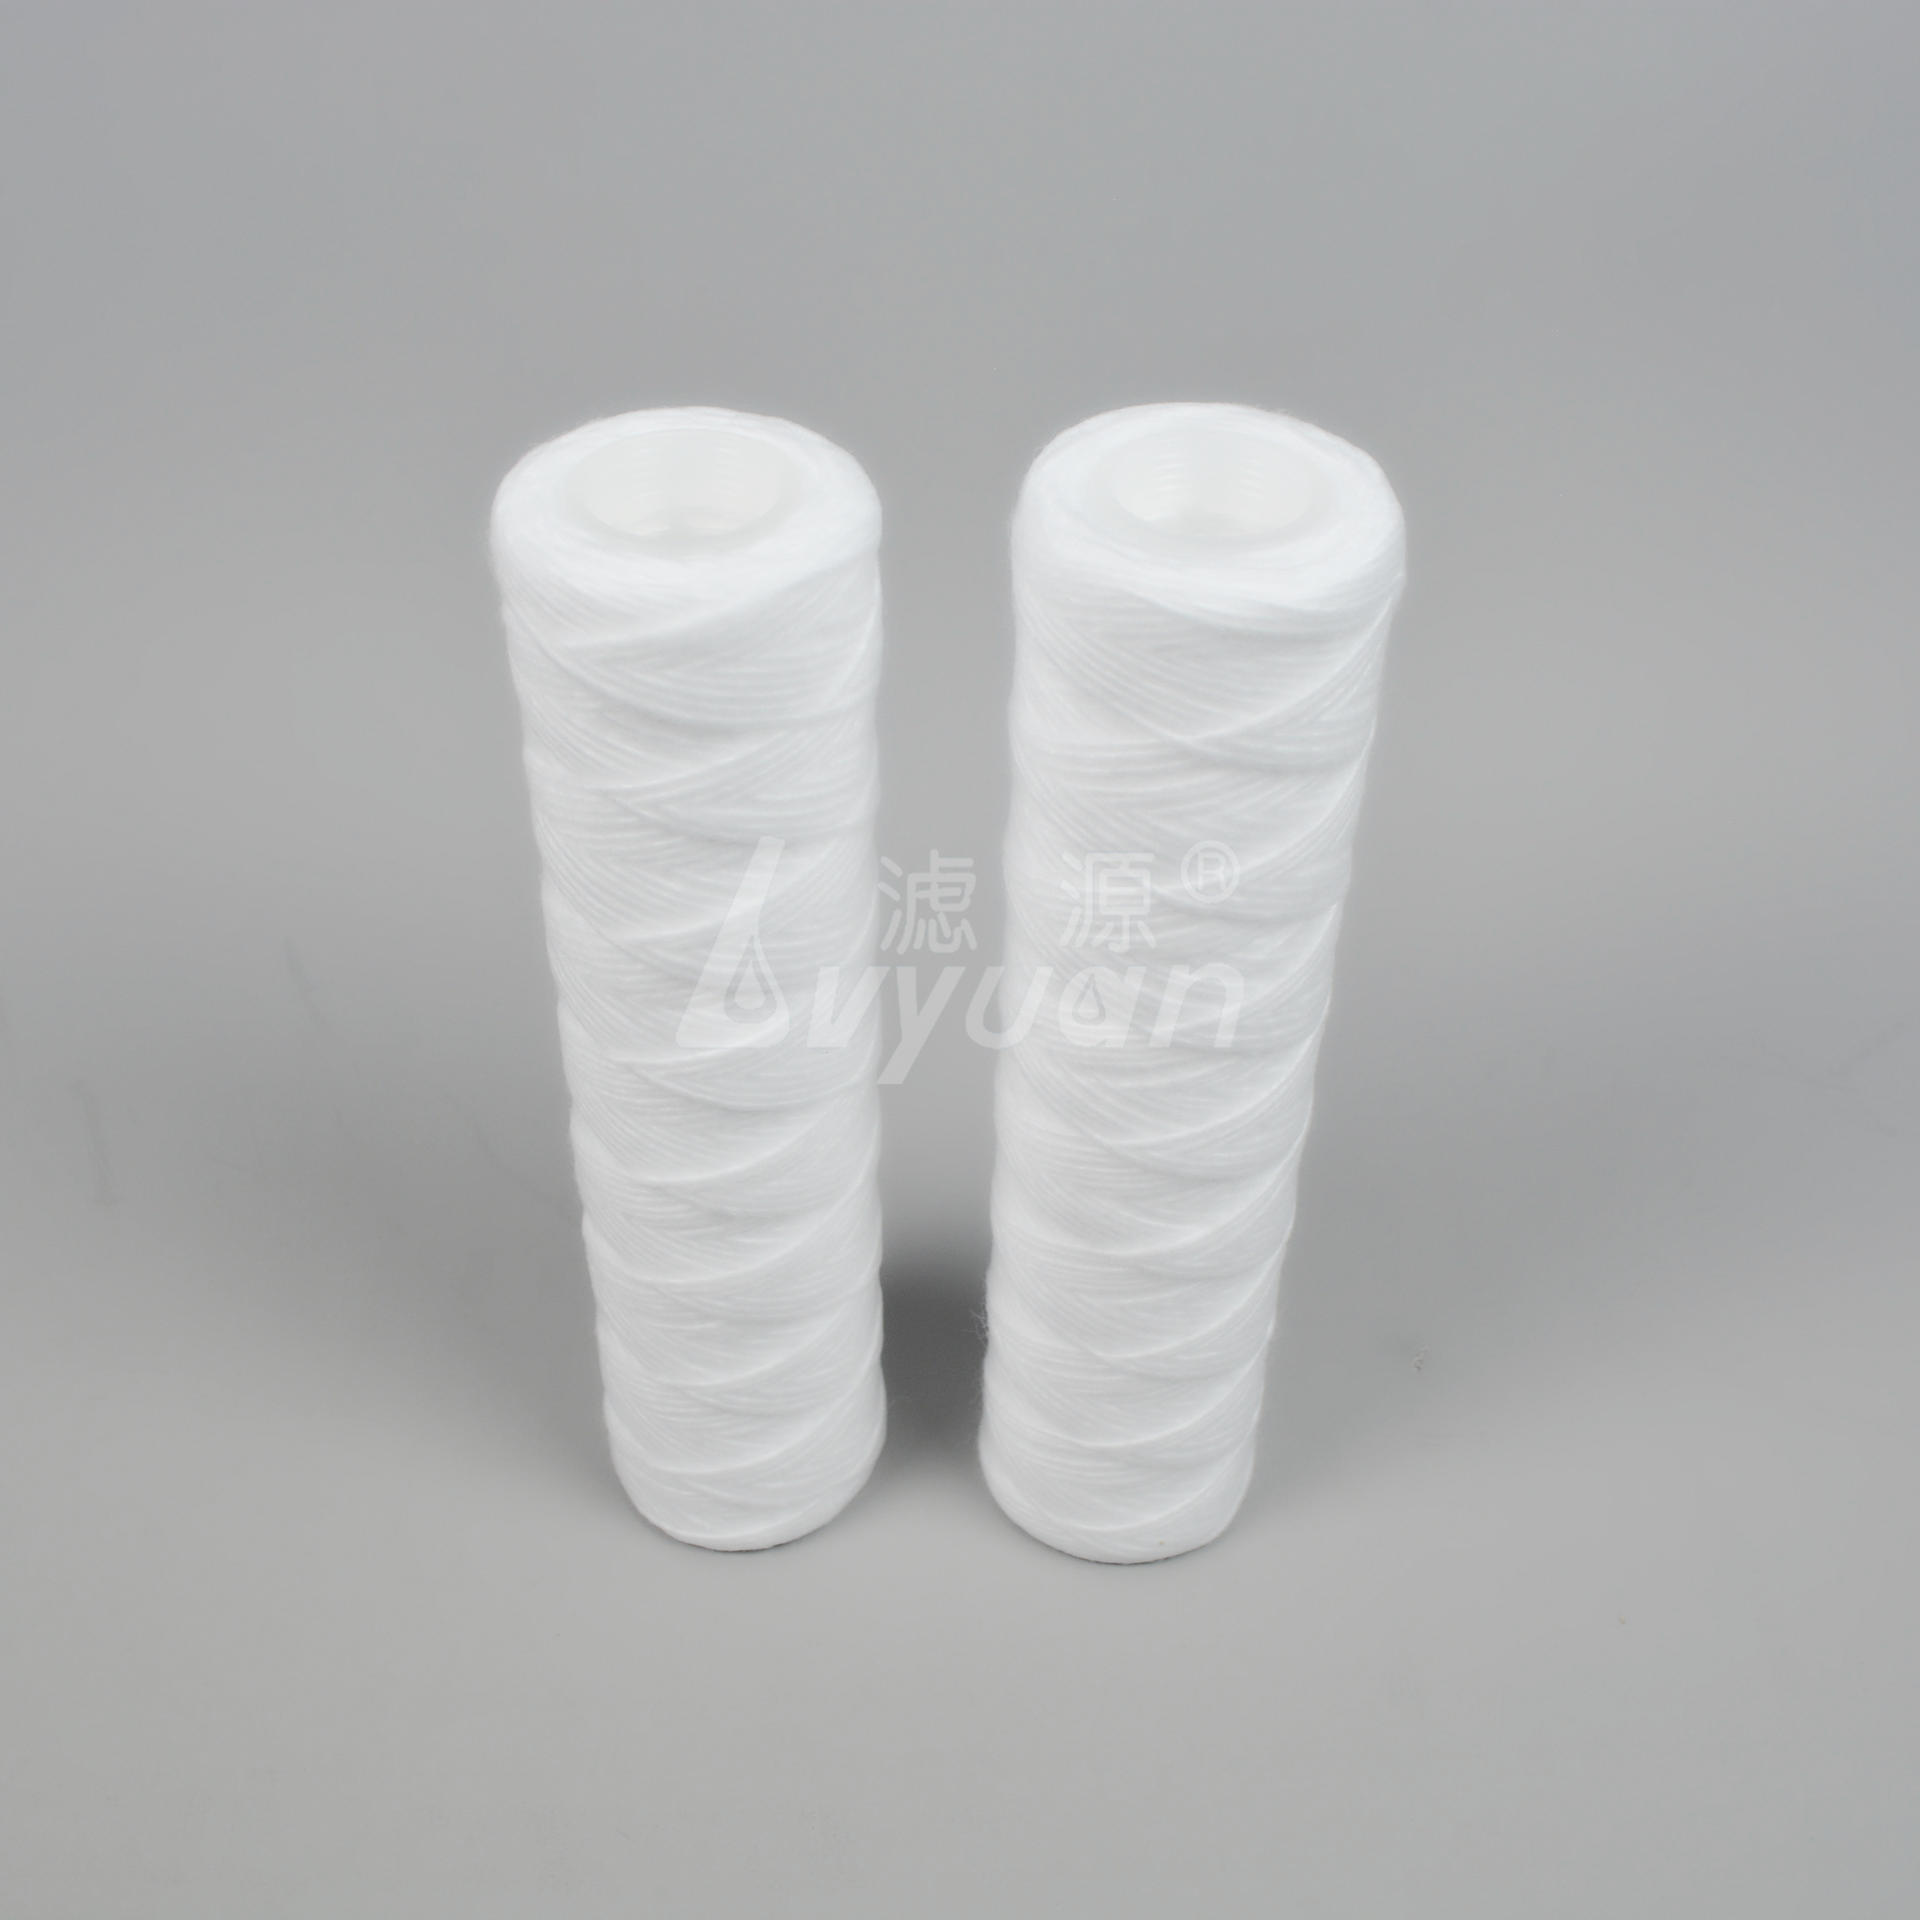 1box/50pcs 1 3 5 10 micron 10 inch spun polypropylene filter cartridge/pp string wound yarn filter cartridge for water filter